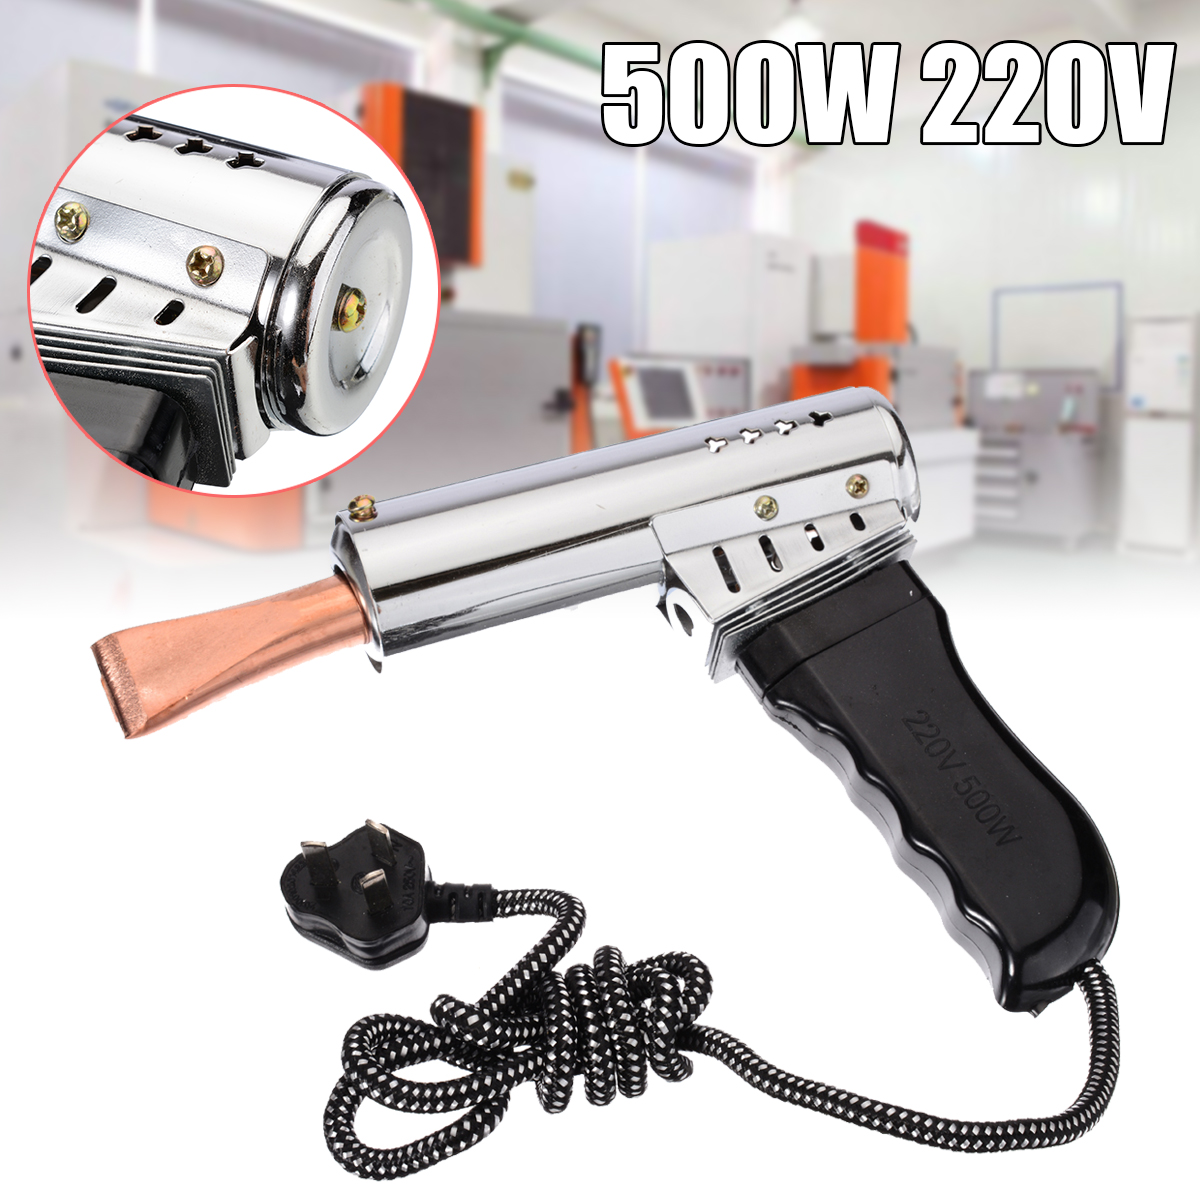 220V AC 500W Soldering Iron Heavy Duty Chise w// Copper Point Carft Munufacturing